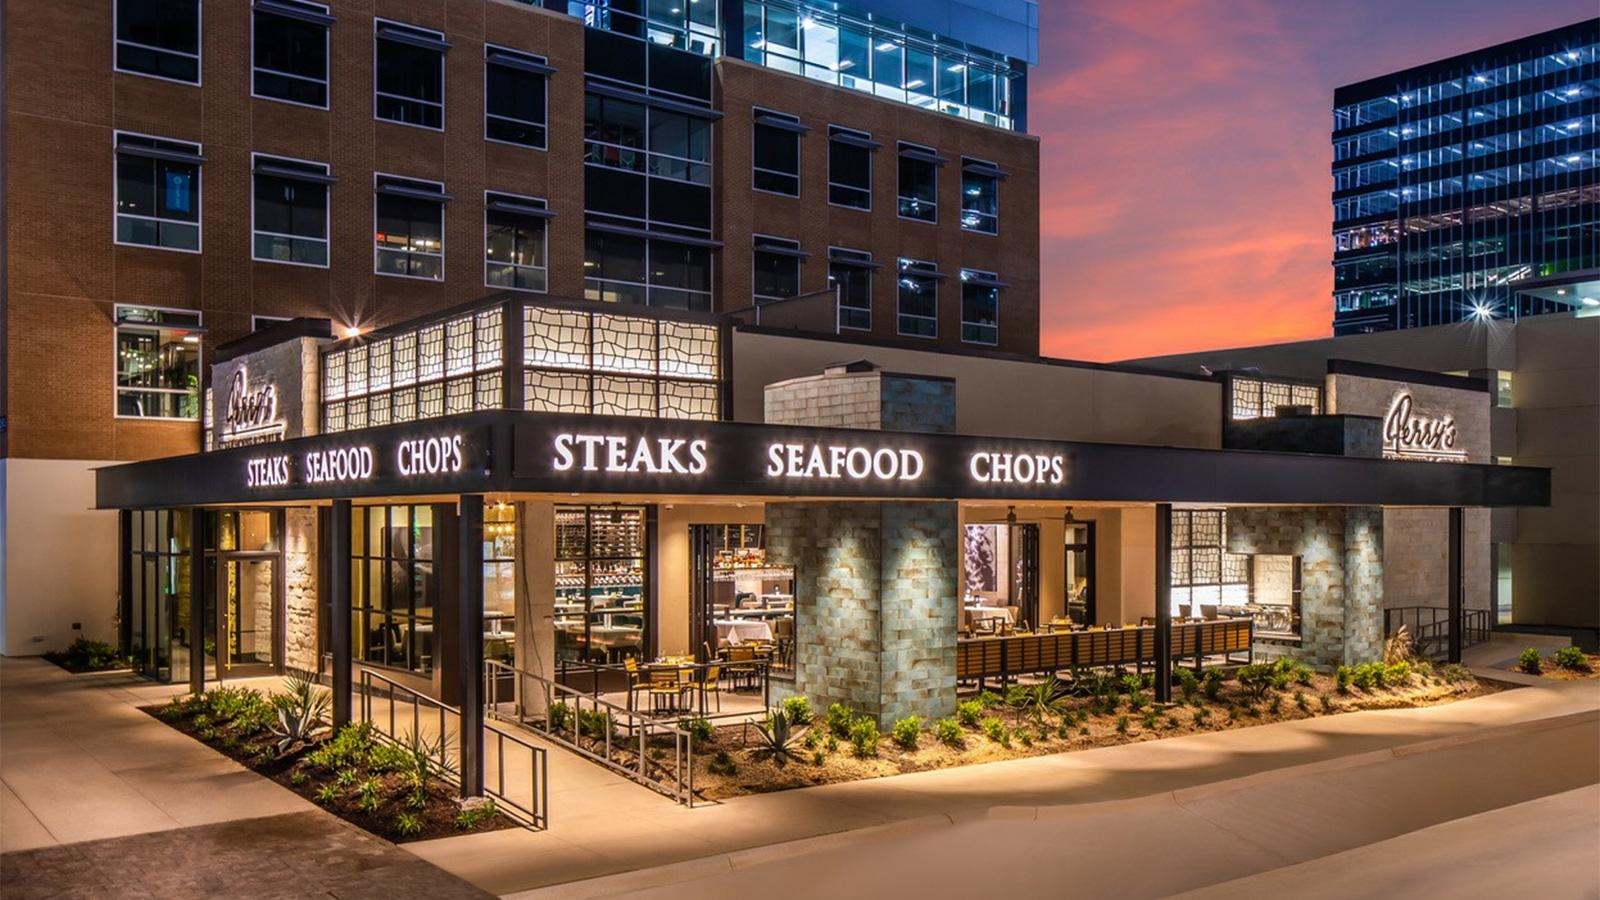 The exterior of Perry's Steakhouse & Grille in Austin